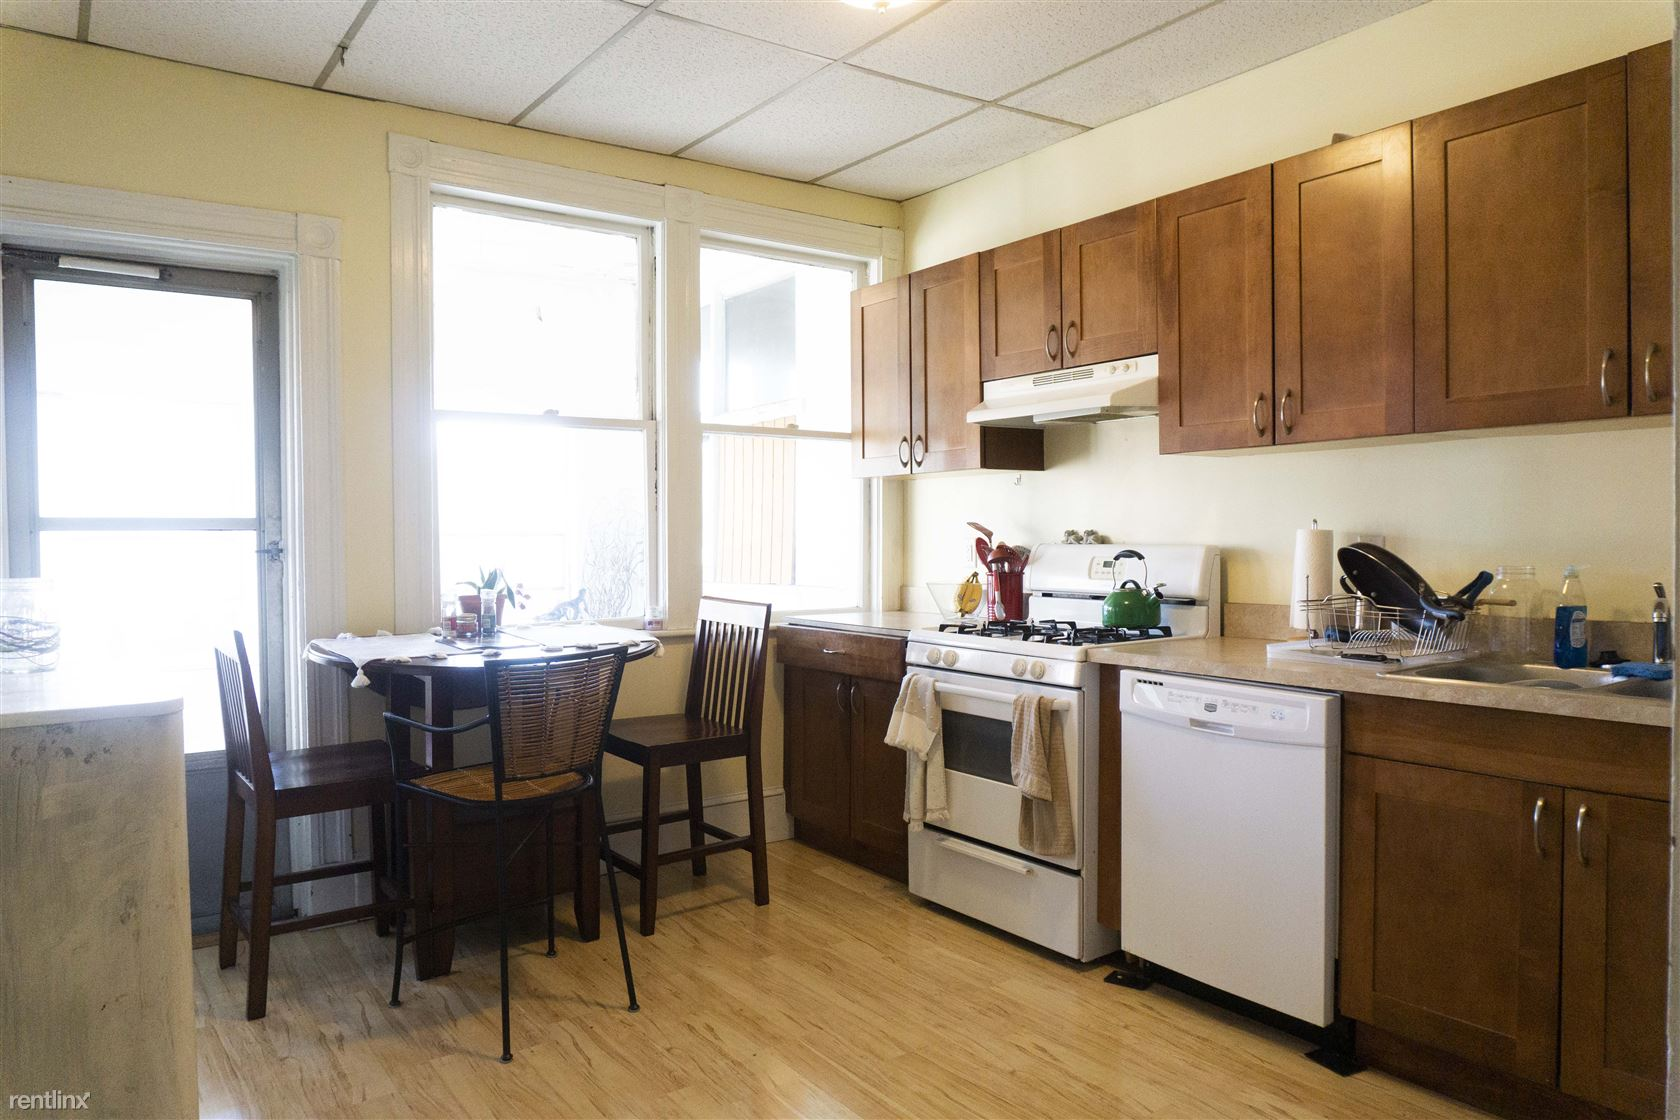 32 Orkney Rd Unit 2 - 4500USD / month